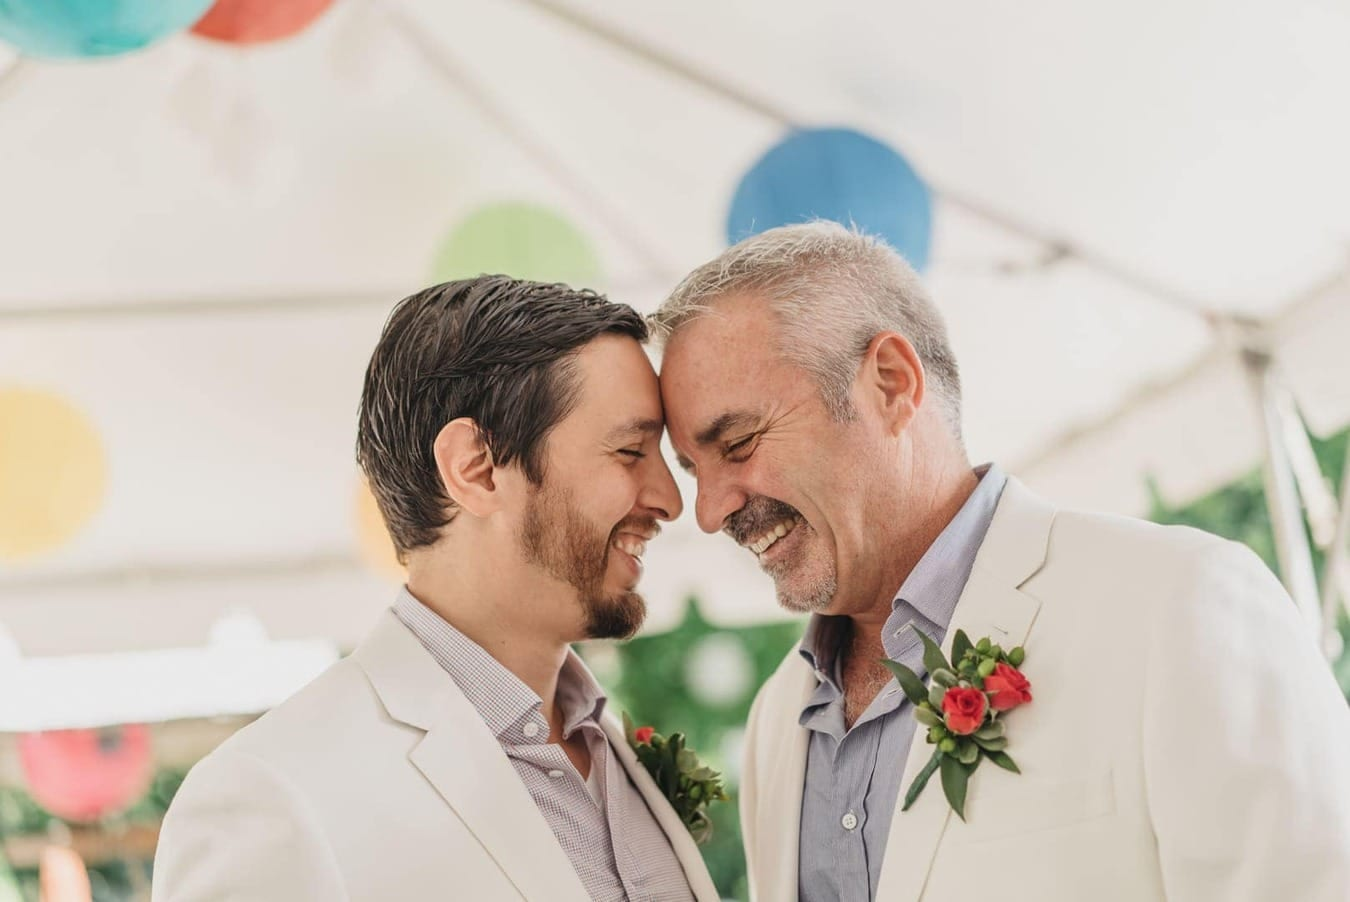 Gay couple smiles and puts heads together during wedding reception